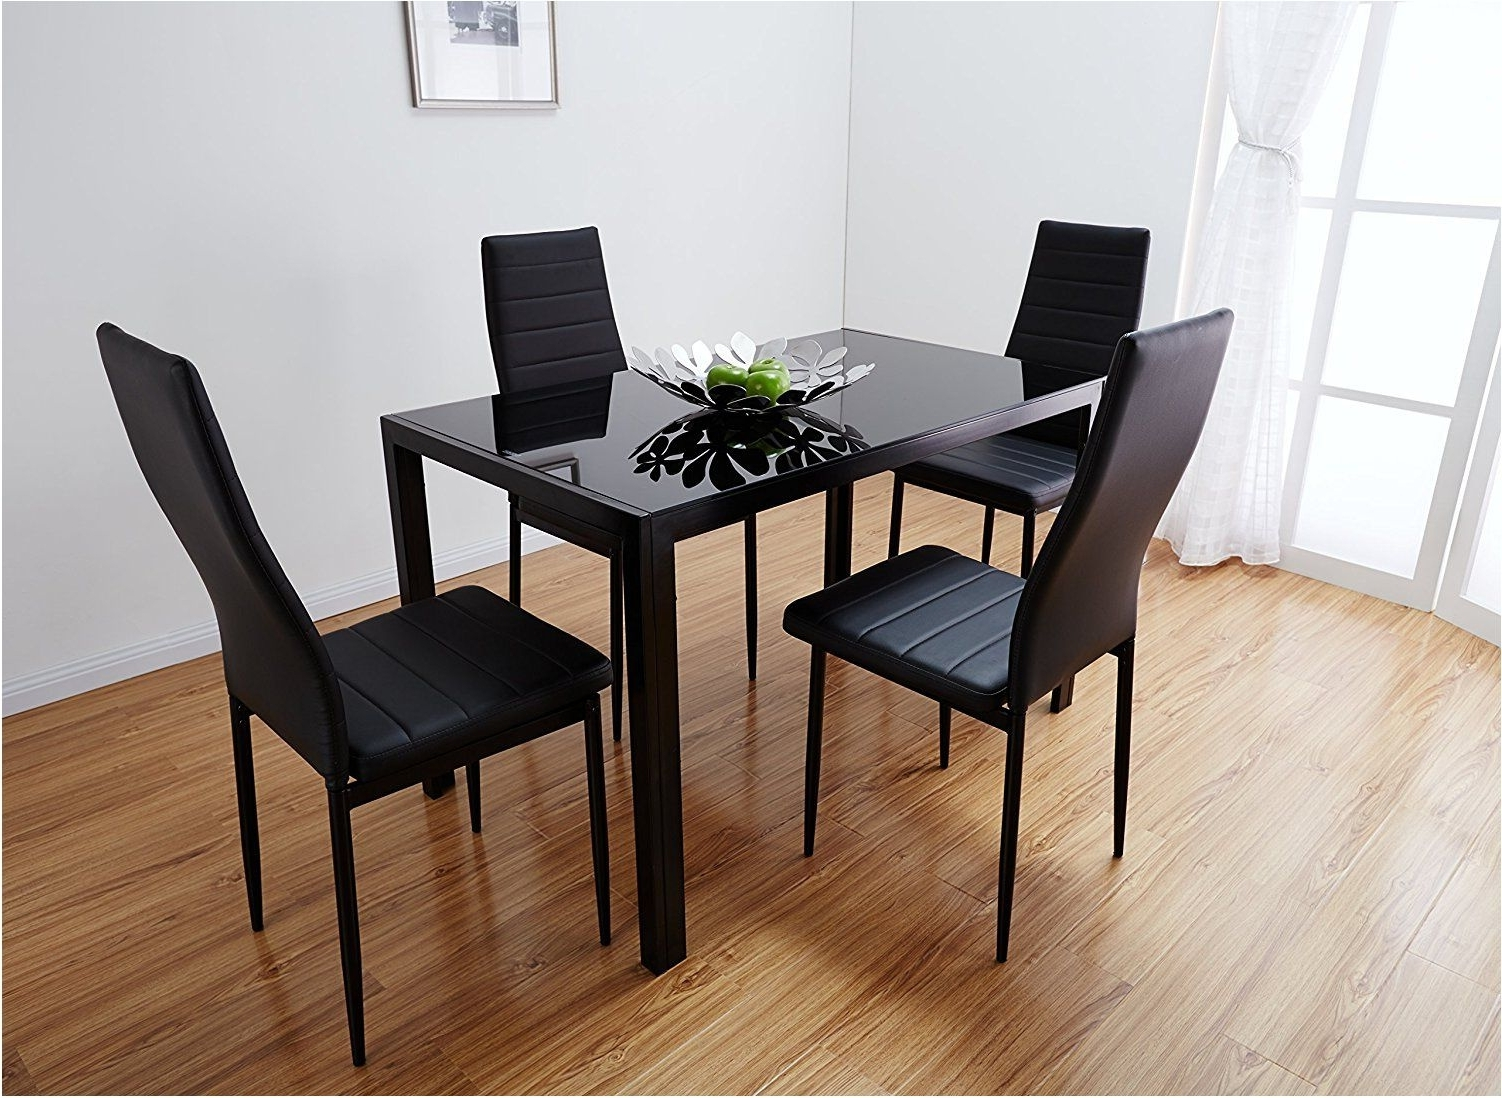 Black Glass Dining Tables And 4 Chairs Throughout Popular Nice Black Glass Dining Table Set With 4 Faux Leather Chairs Brand (Gallery 7 of 25)